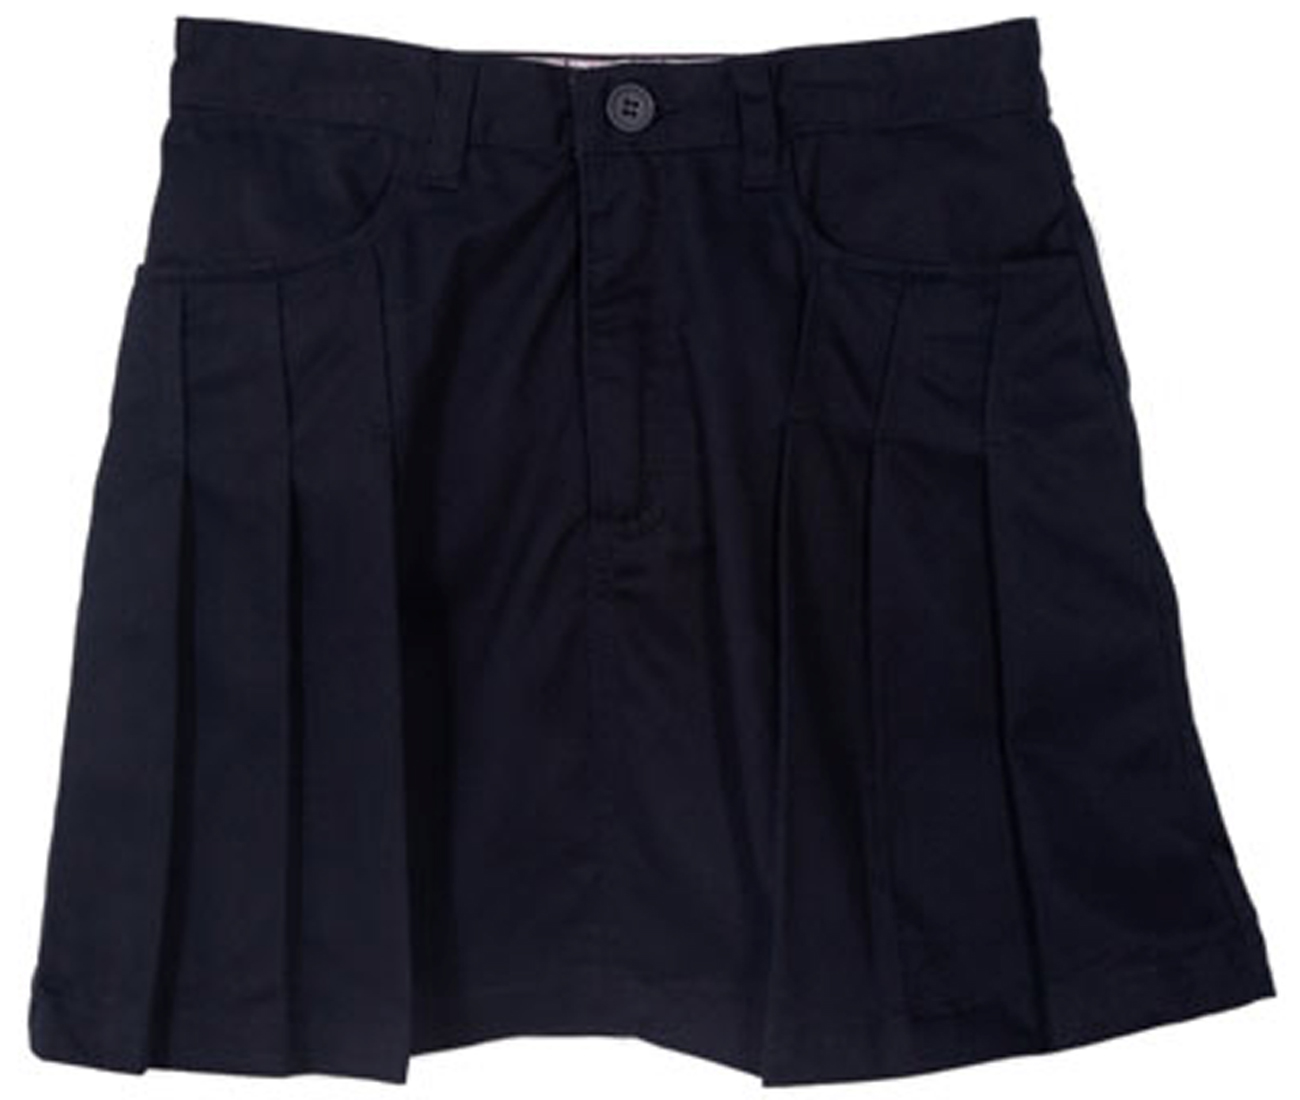 Genuine School Uniform Girls Navy Pleated Uniform Skort at Sears.com